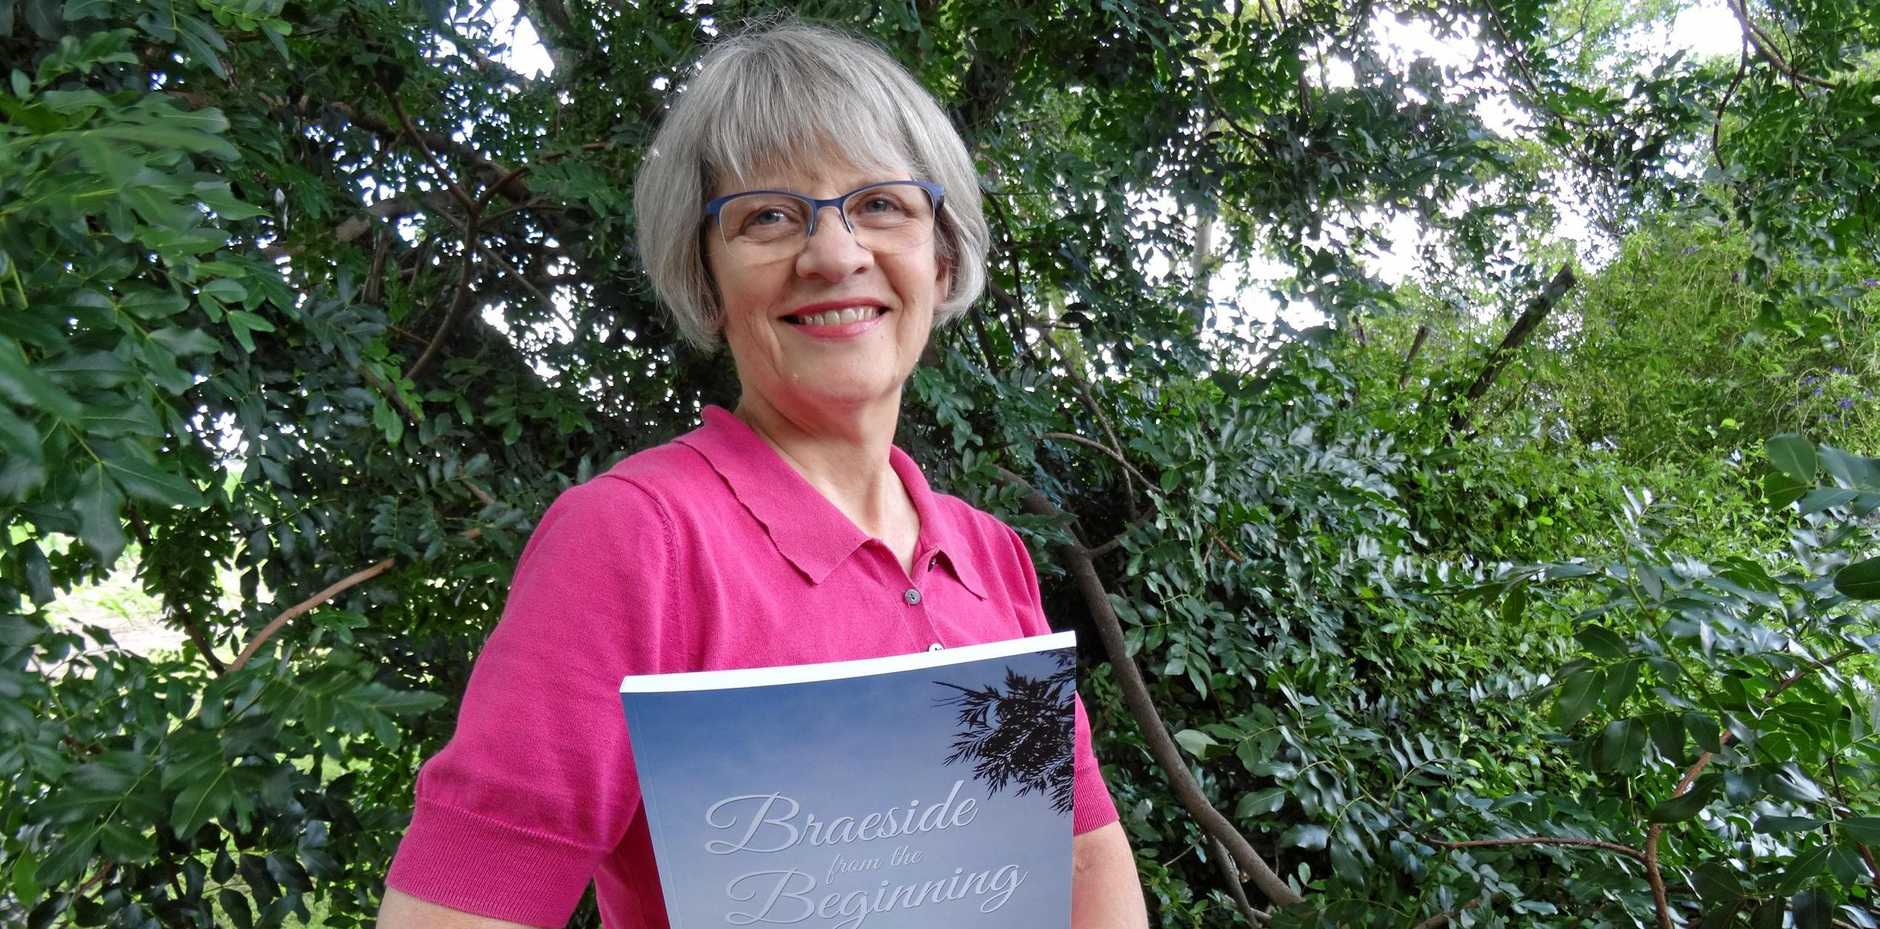 LAND HISTORY: Lesley Beames has published 'Braeside from the Beginning,' a book on settlement.